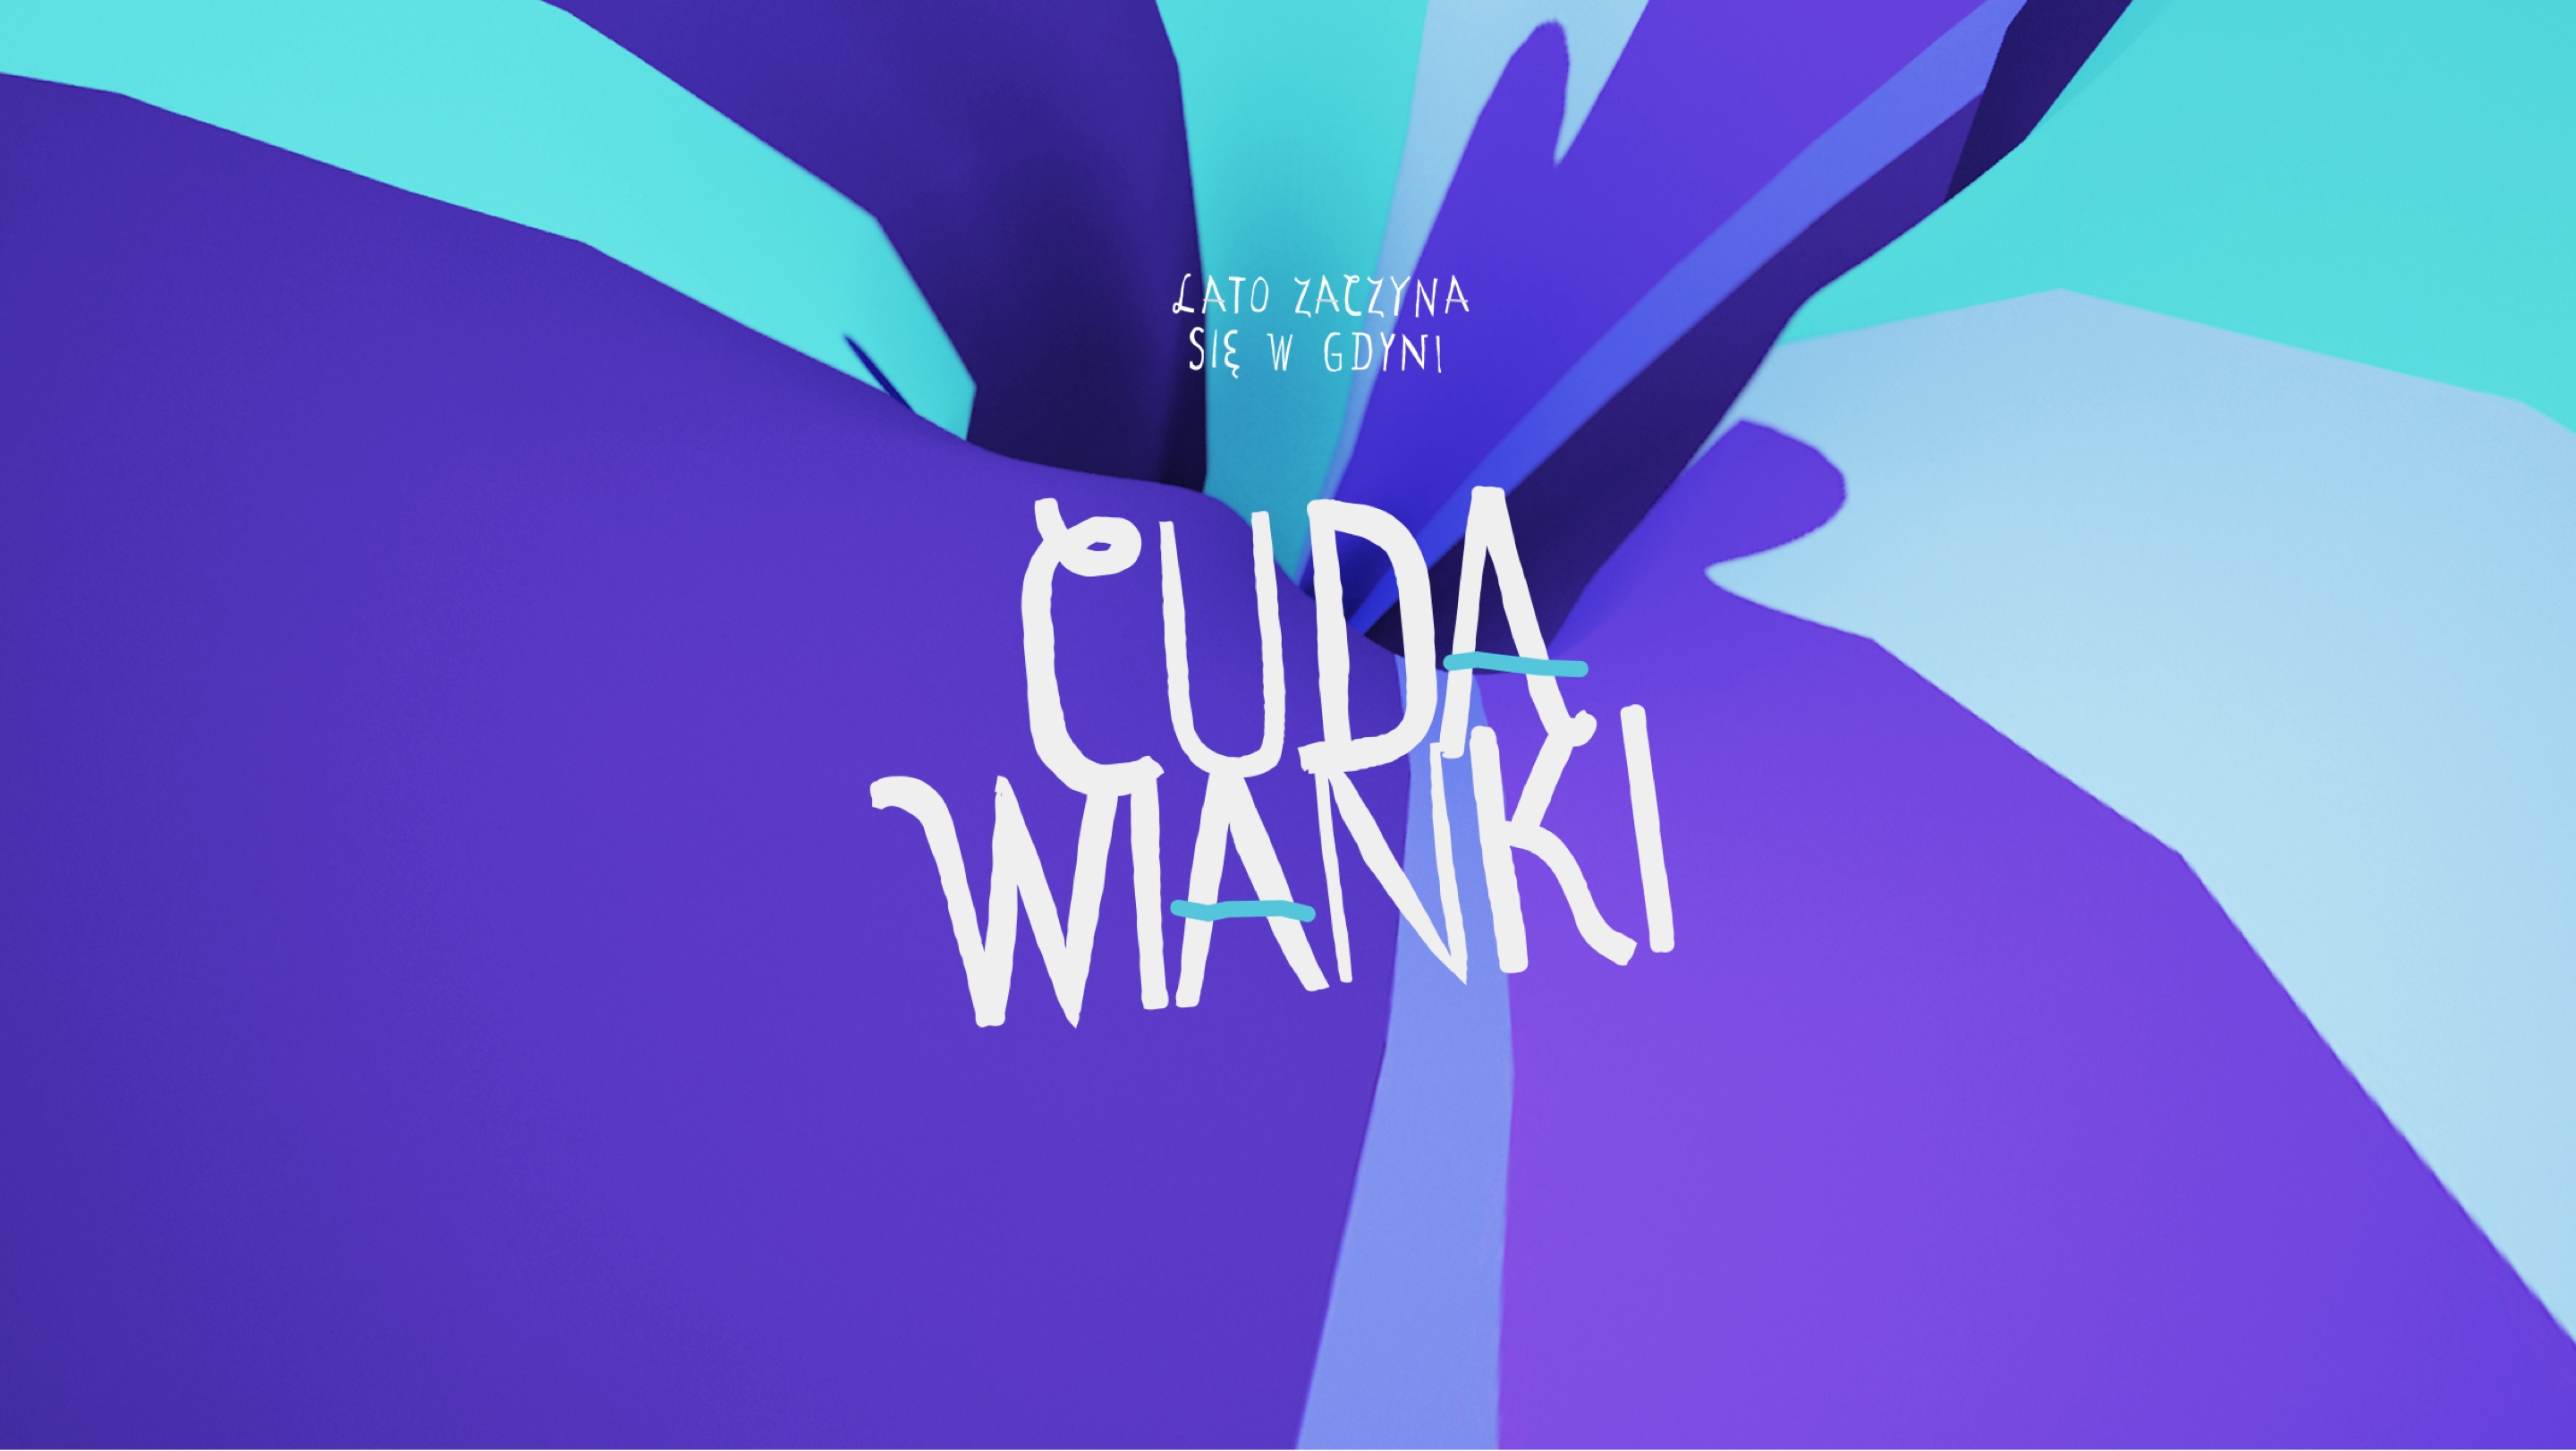 Cudawianki by Uniforma